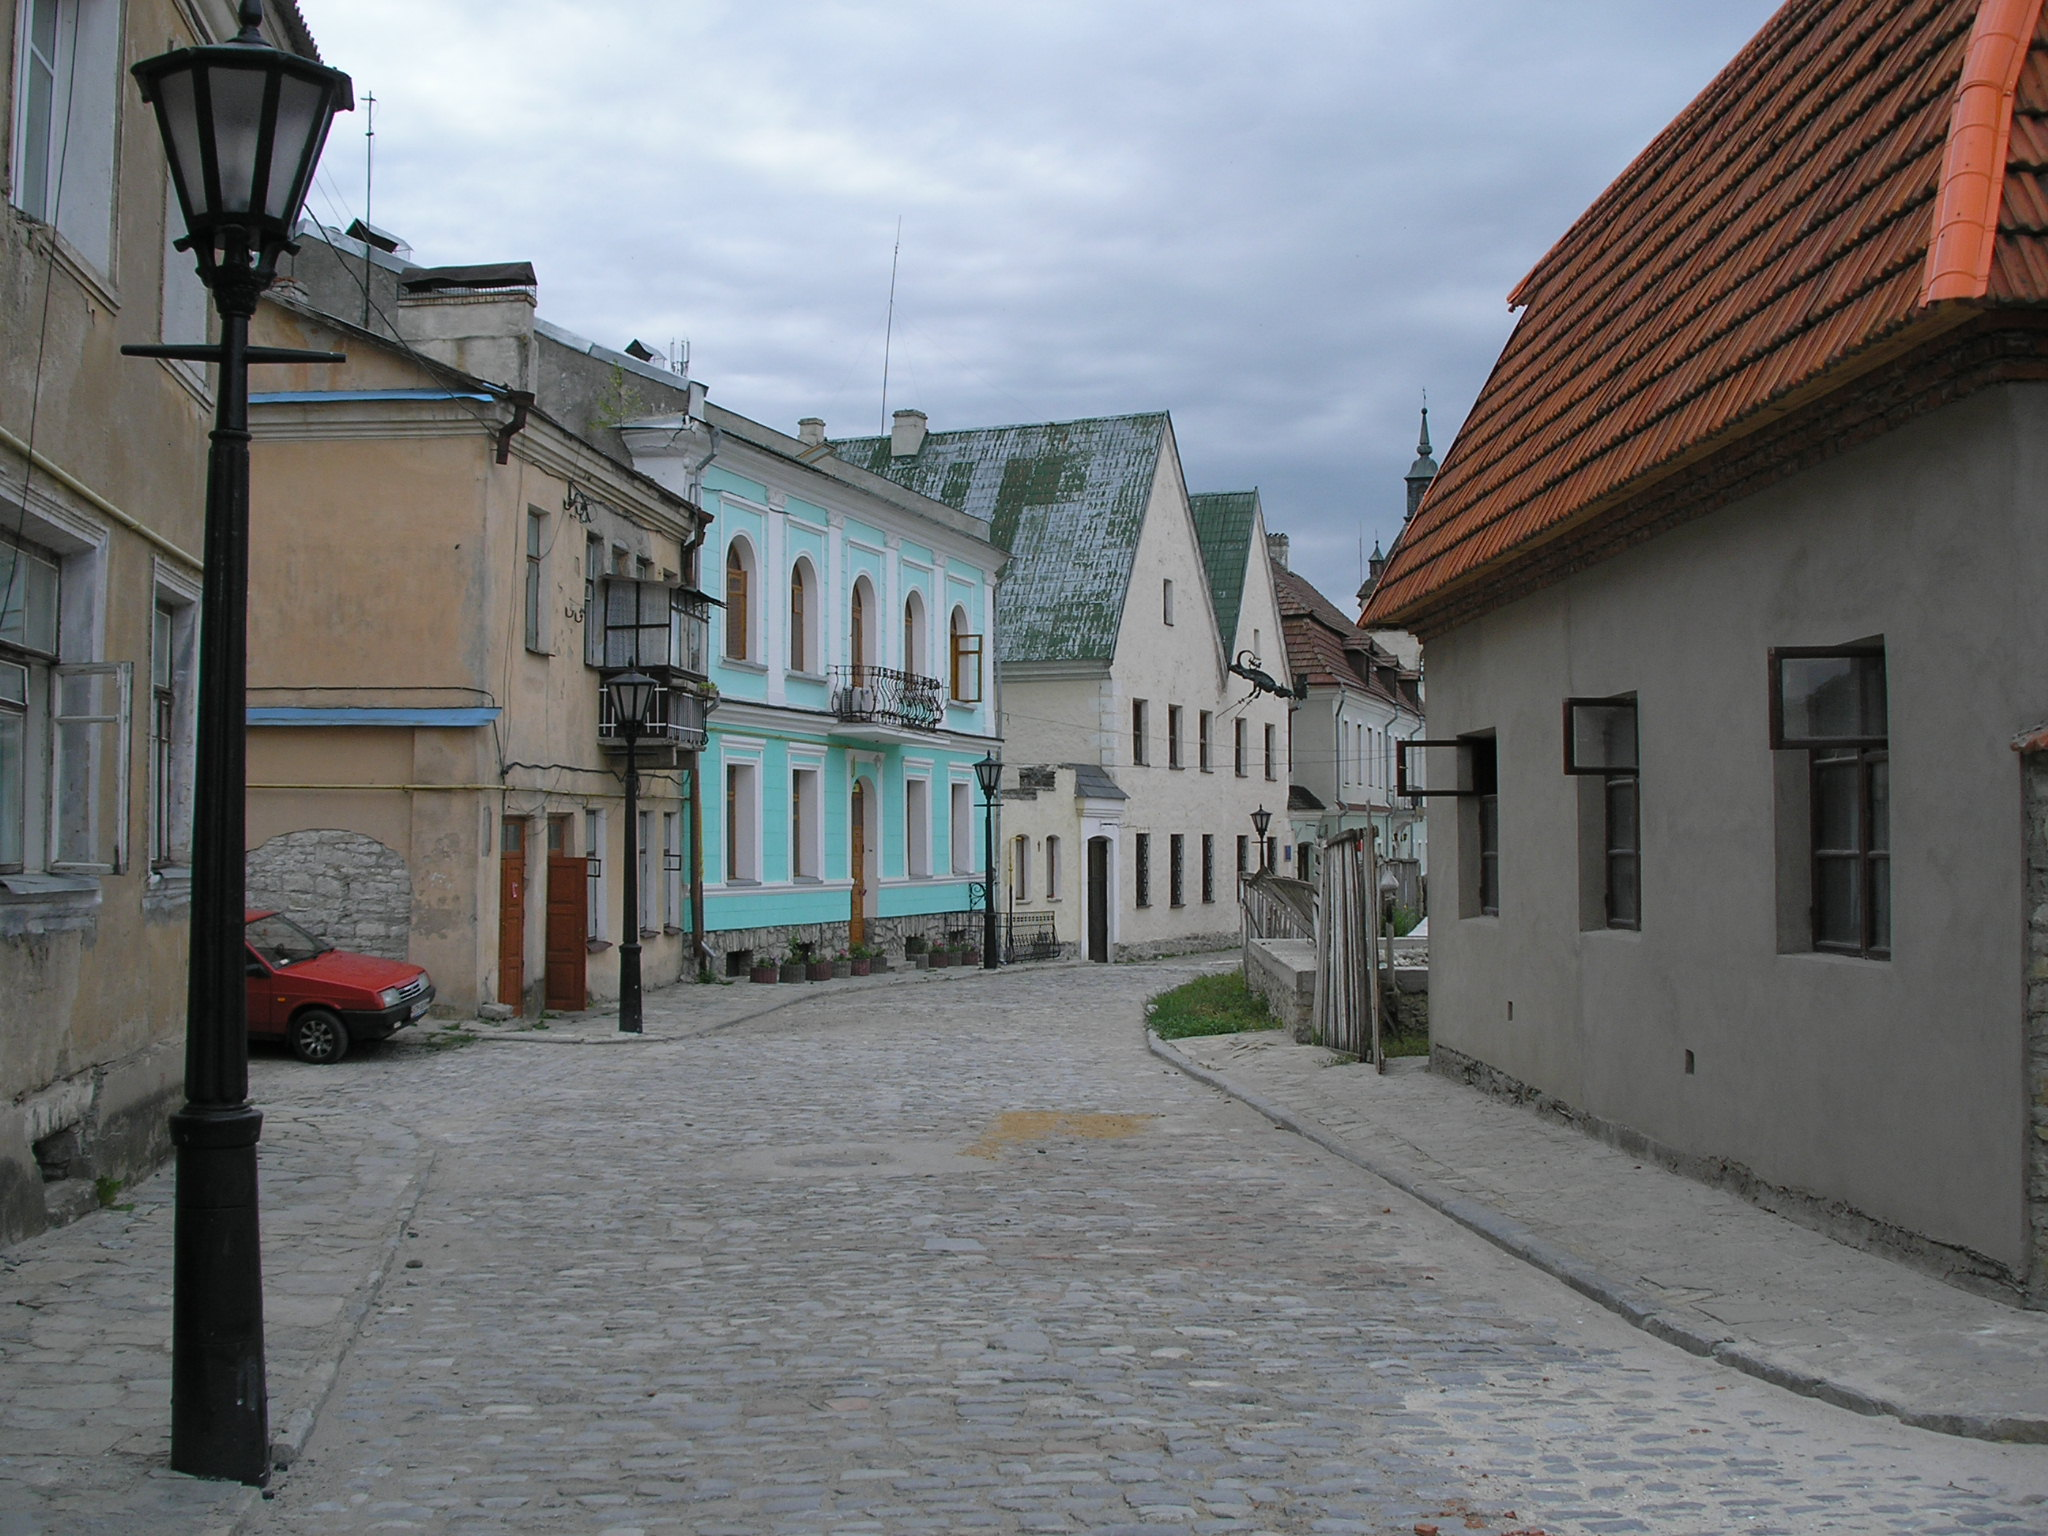 File:Kamianets-Podilskyi Old Town street.JPG - Wikimedia Commons